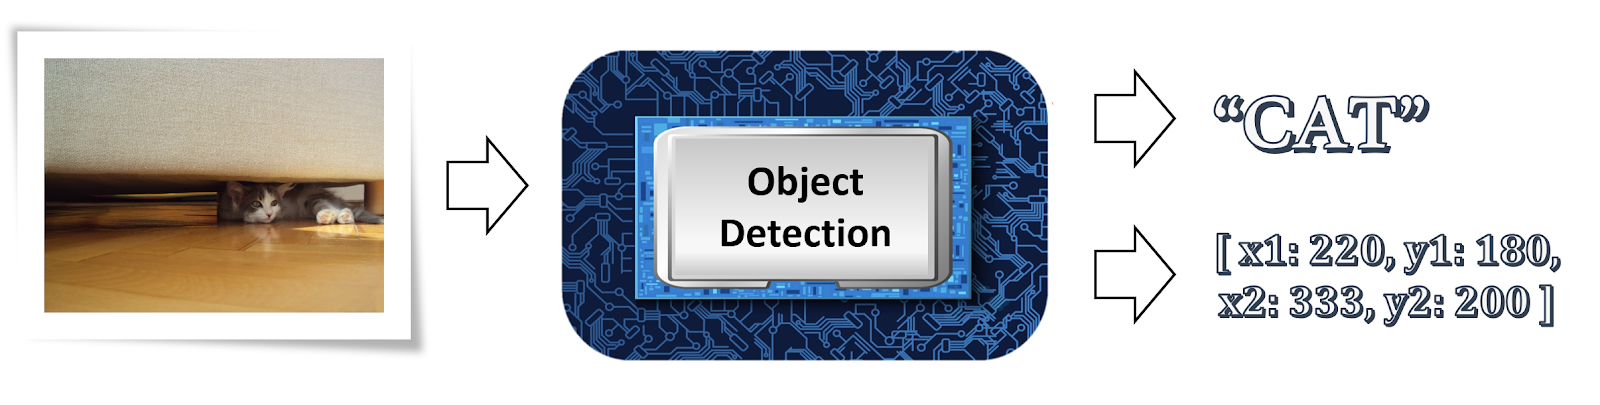 Object detection cat